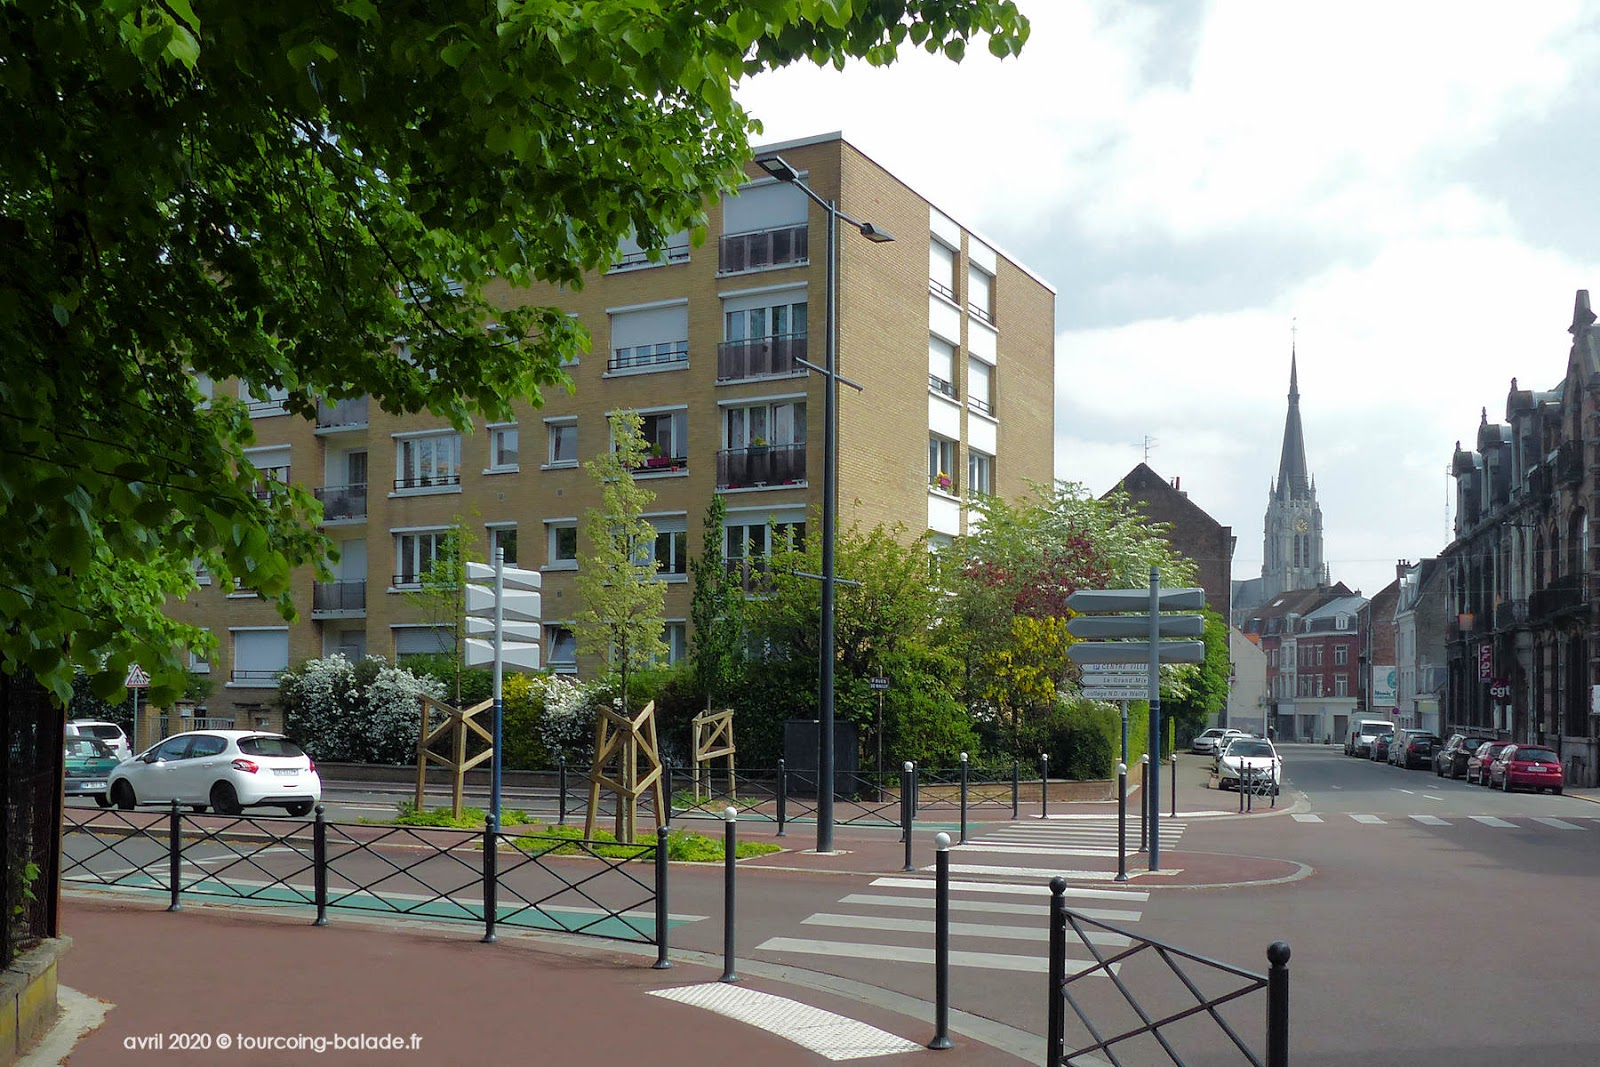 Végétalisation Angle Rues Lille Wailly, Tourcoing 2020